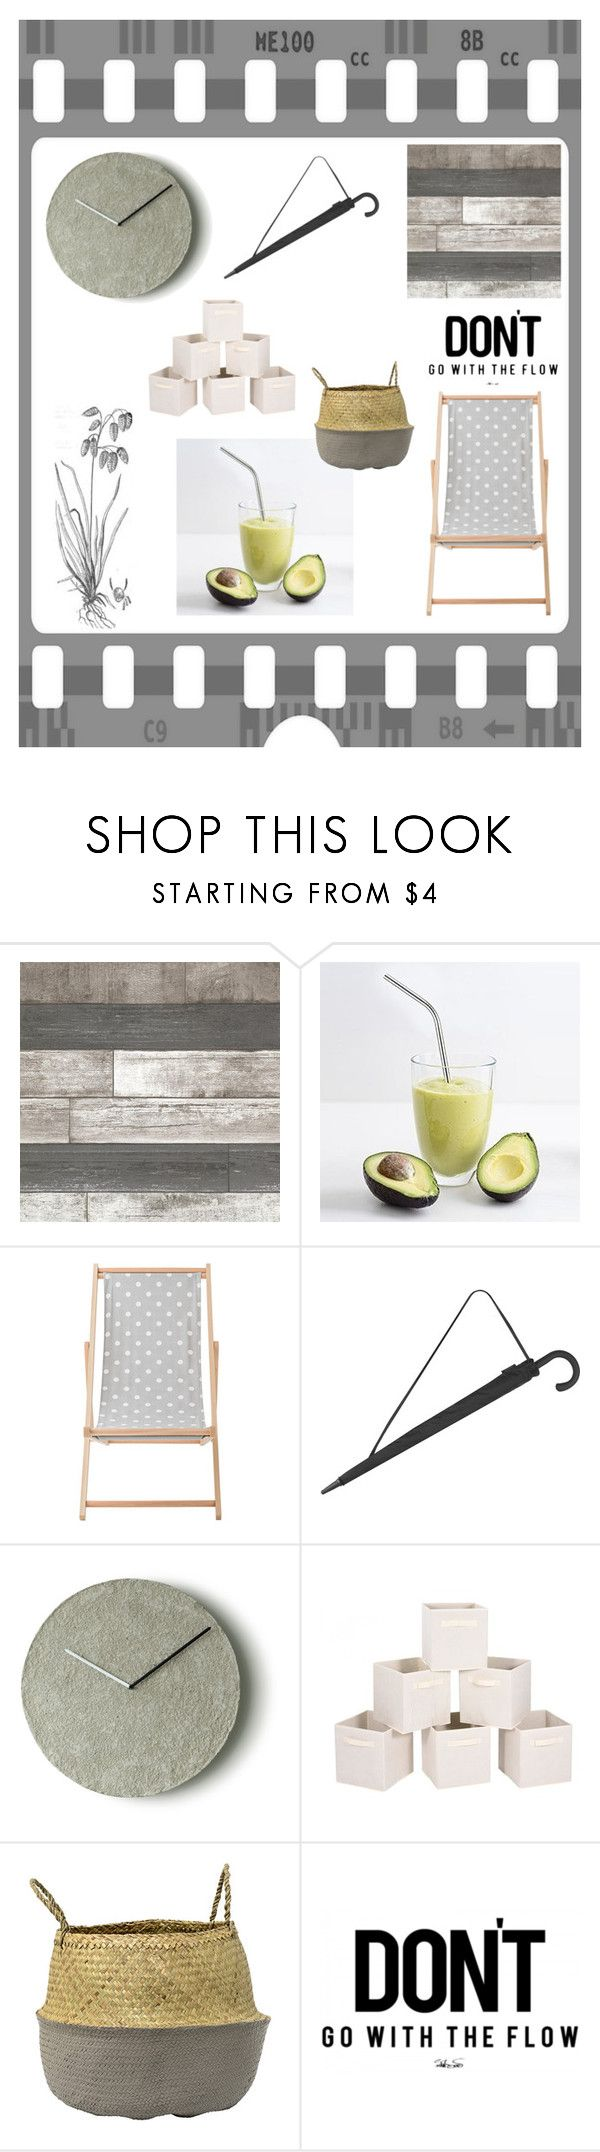 Simple Grey by ioakleaf on Polyvore featuring interior, interiors, interior design, home, home decor, interior decorating and Bloomingville